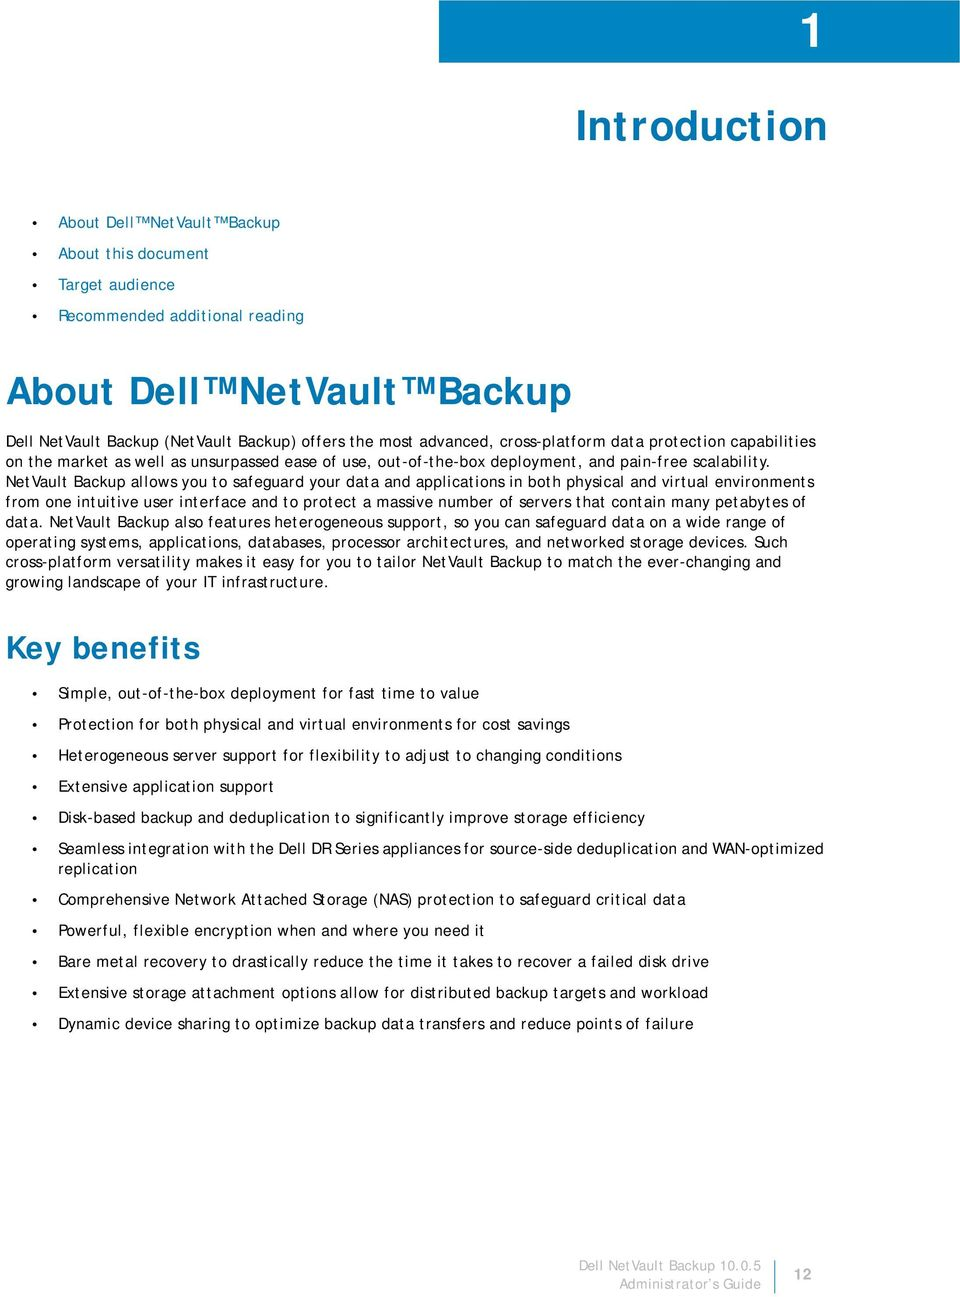 NetVault Backup allows you to safeguard your data and applications in both physical and virtual environments from one intuitive user interface and to protect a massive number of servers that contain